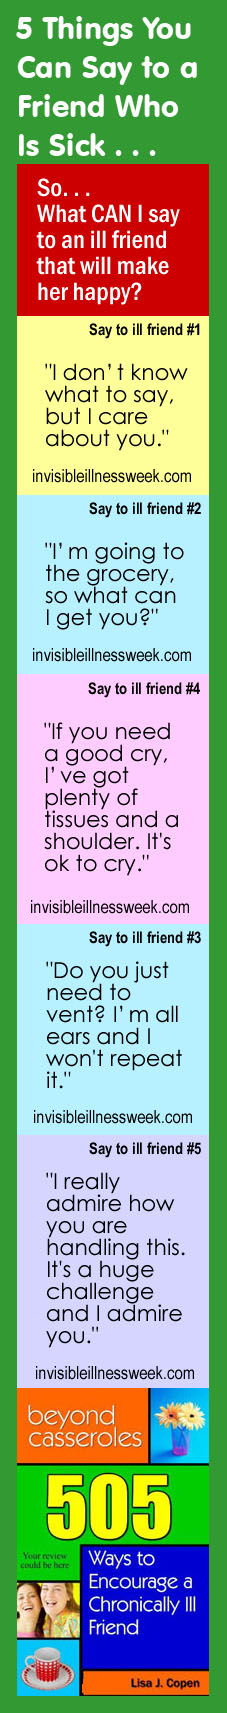 5 Things to Say to an Ill Friend